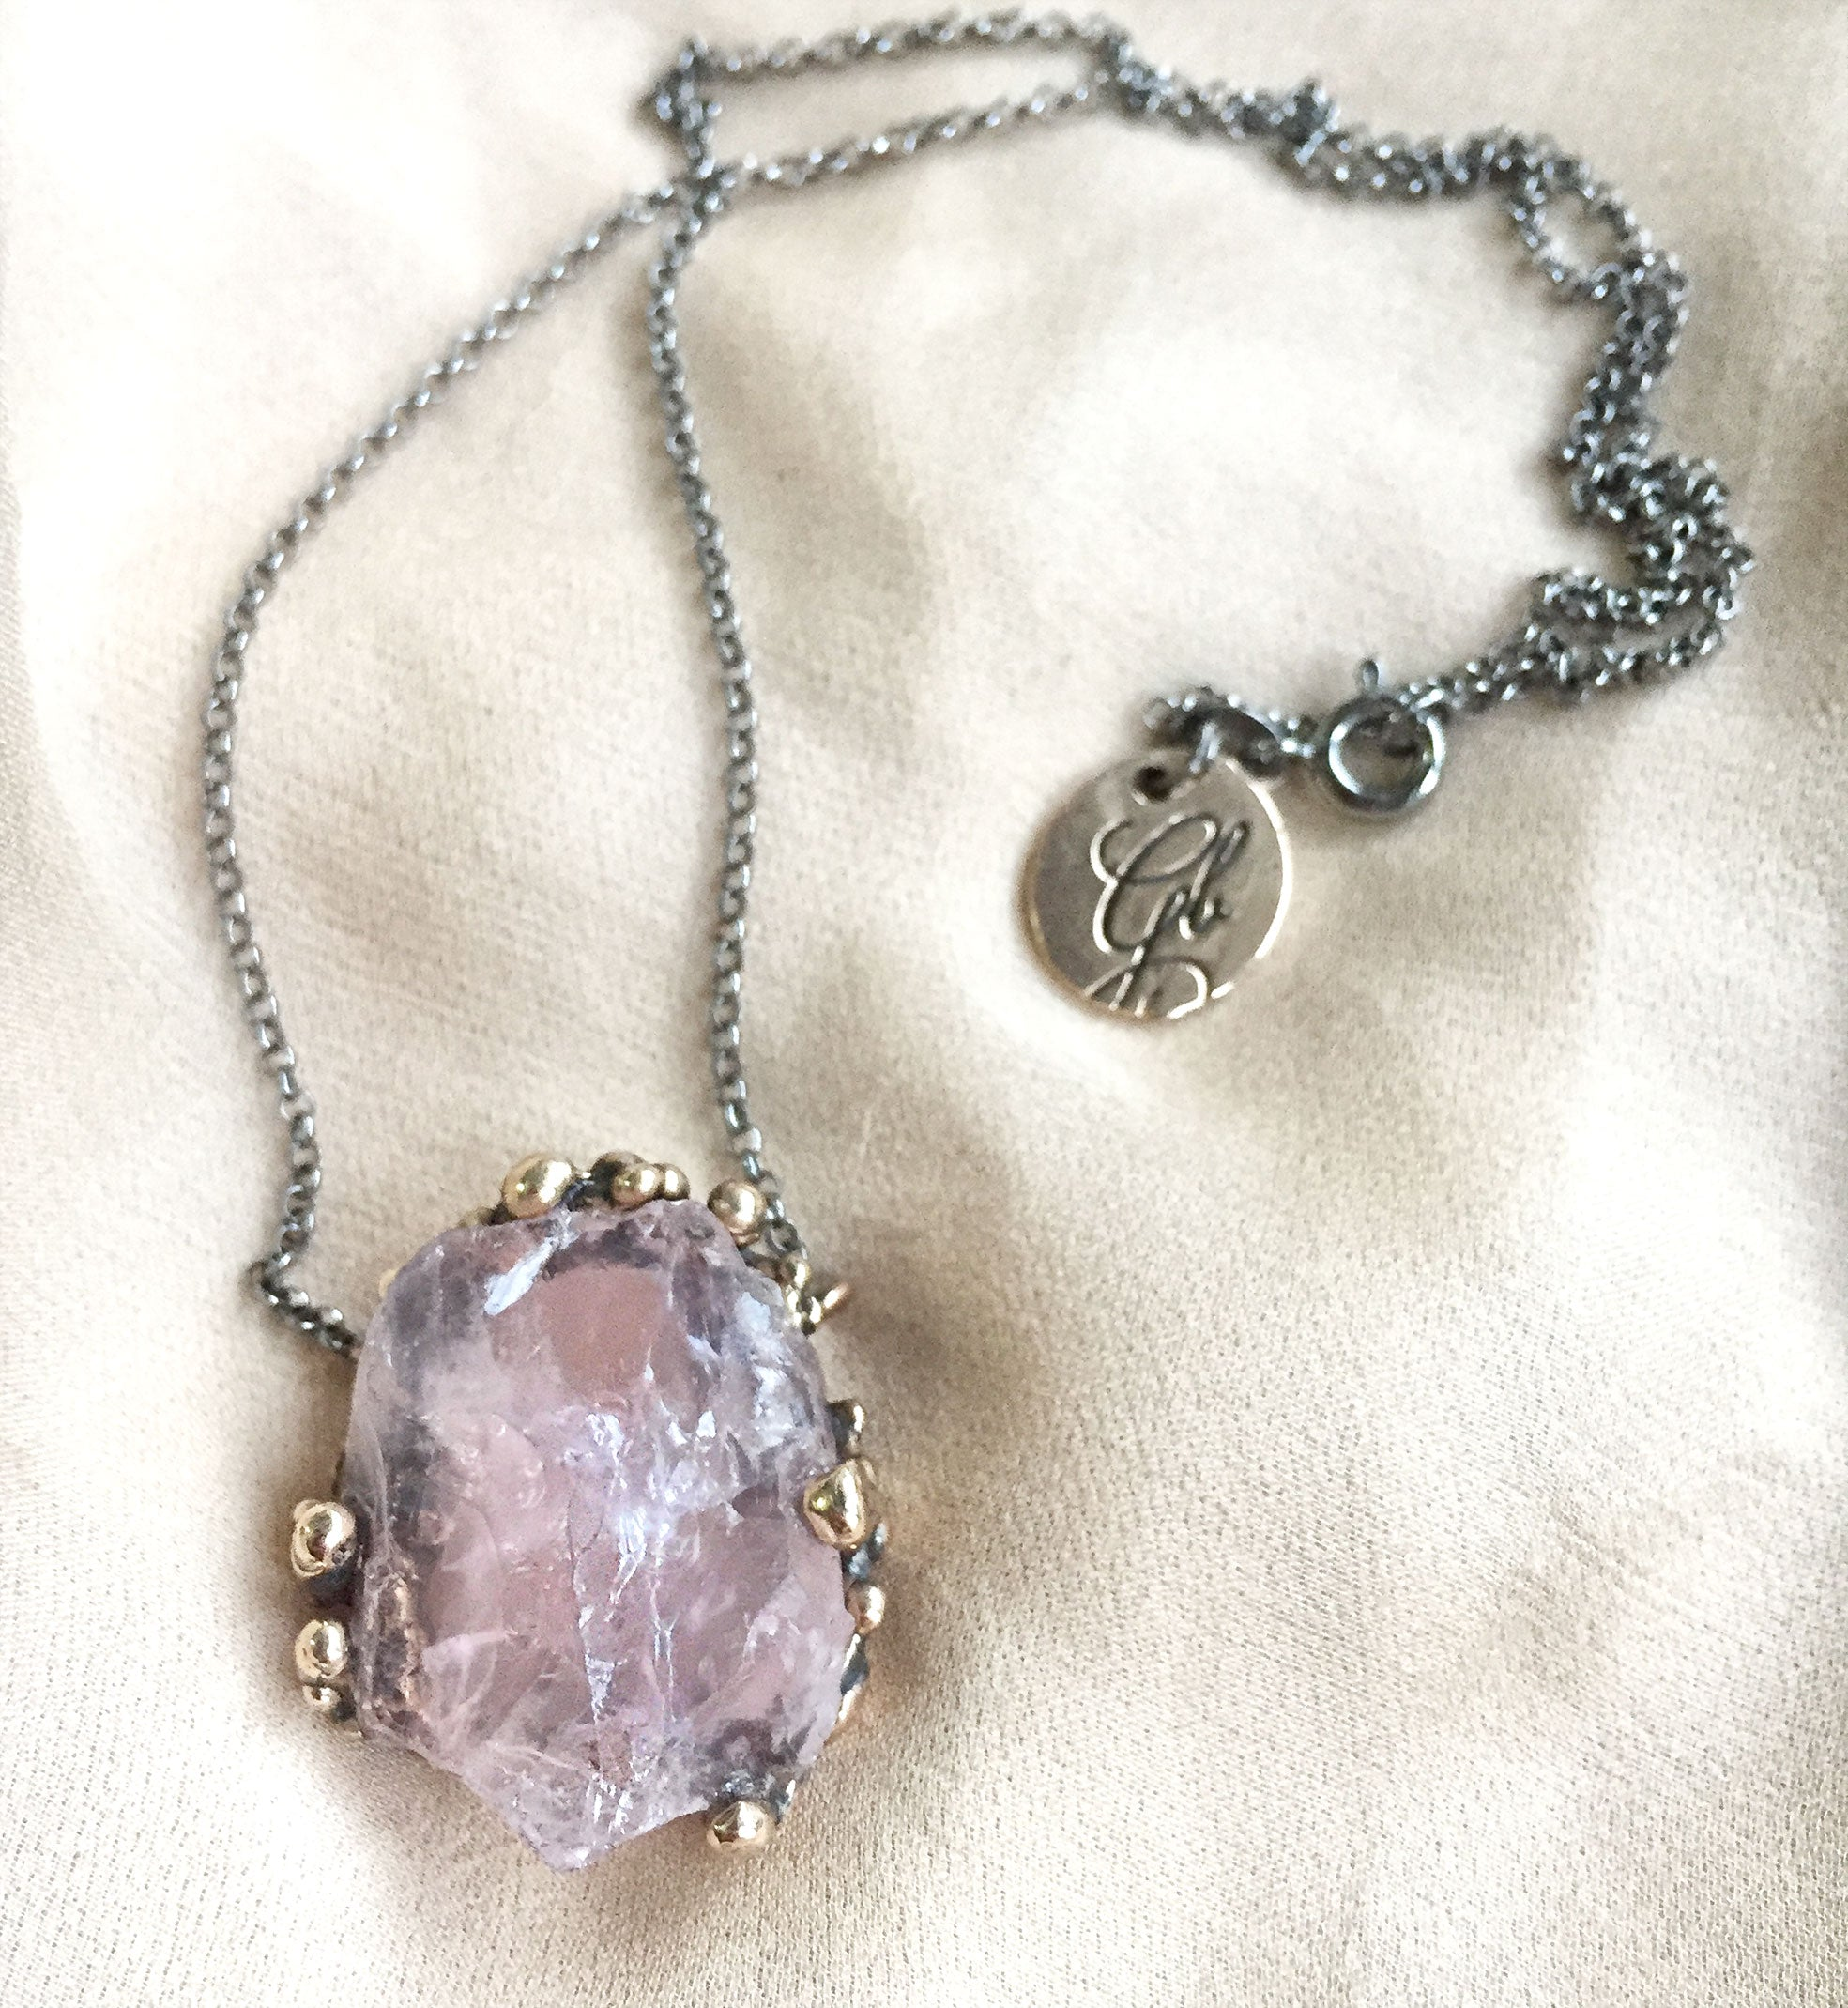 Rose quartz necklace, custom healing jewel by Giadinoblu Jewelry